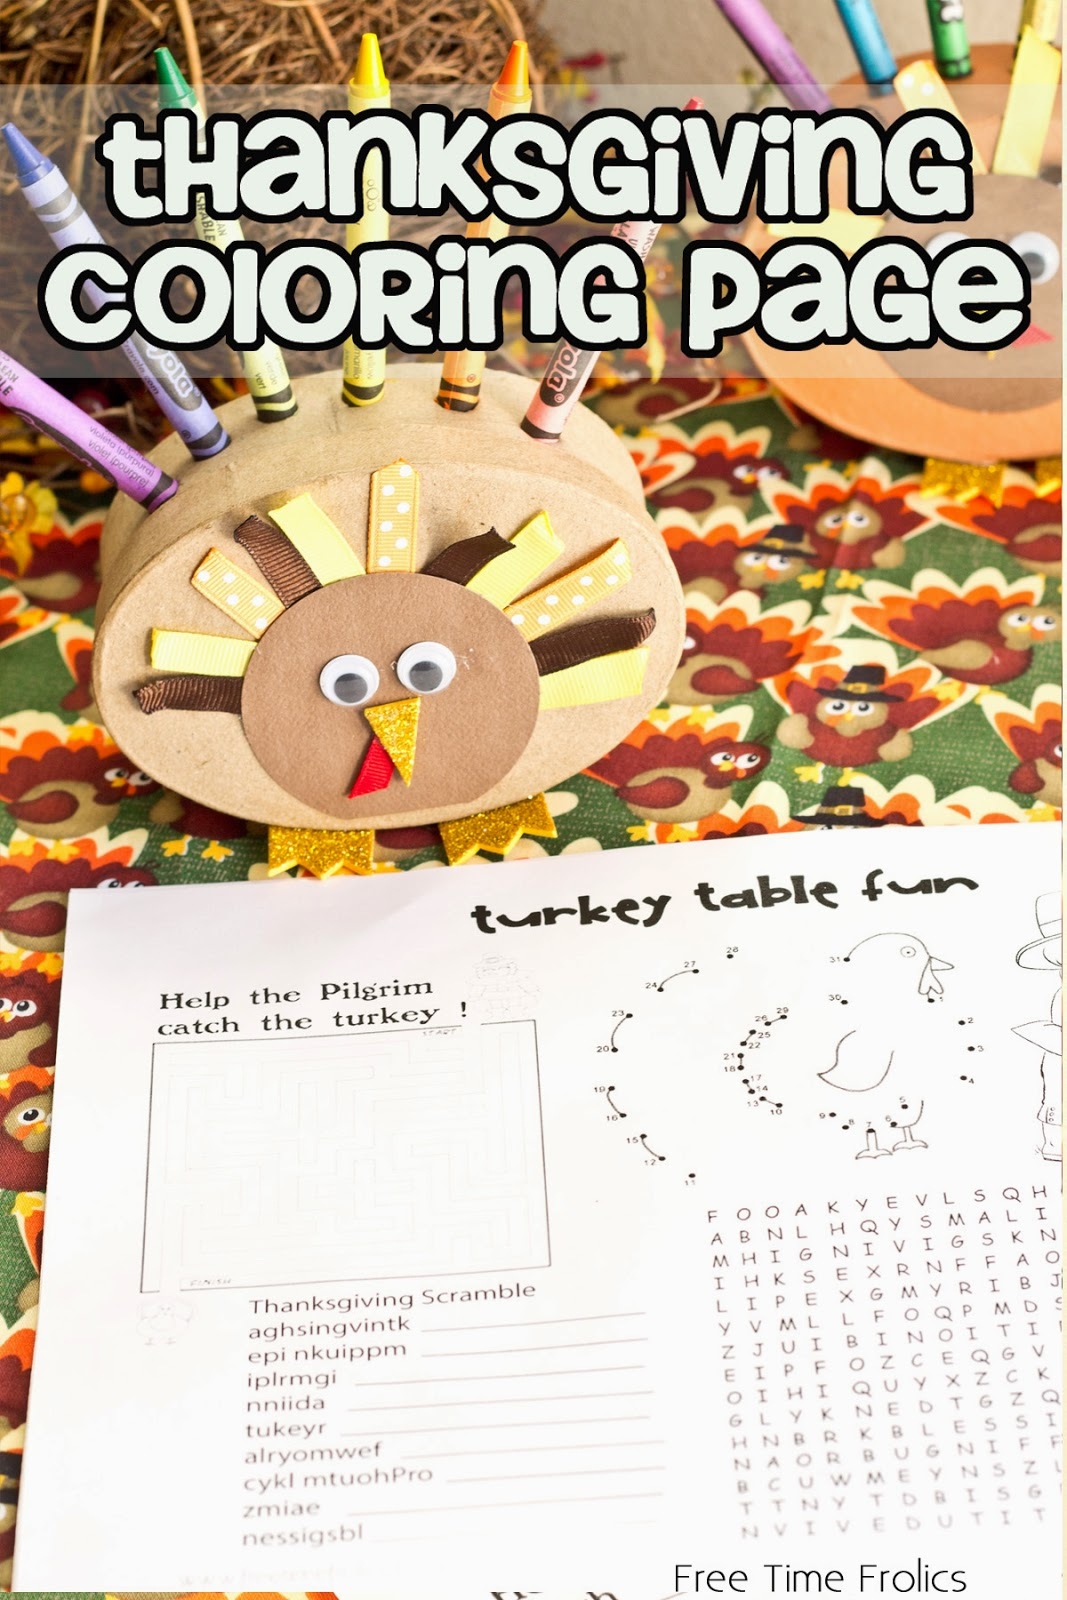 I Added This Adorable Turkey Crayon Holder For The Table Decorations And Voile Your Kids Is Ready Those Hungry